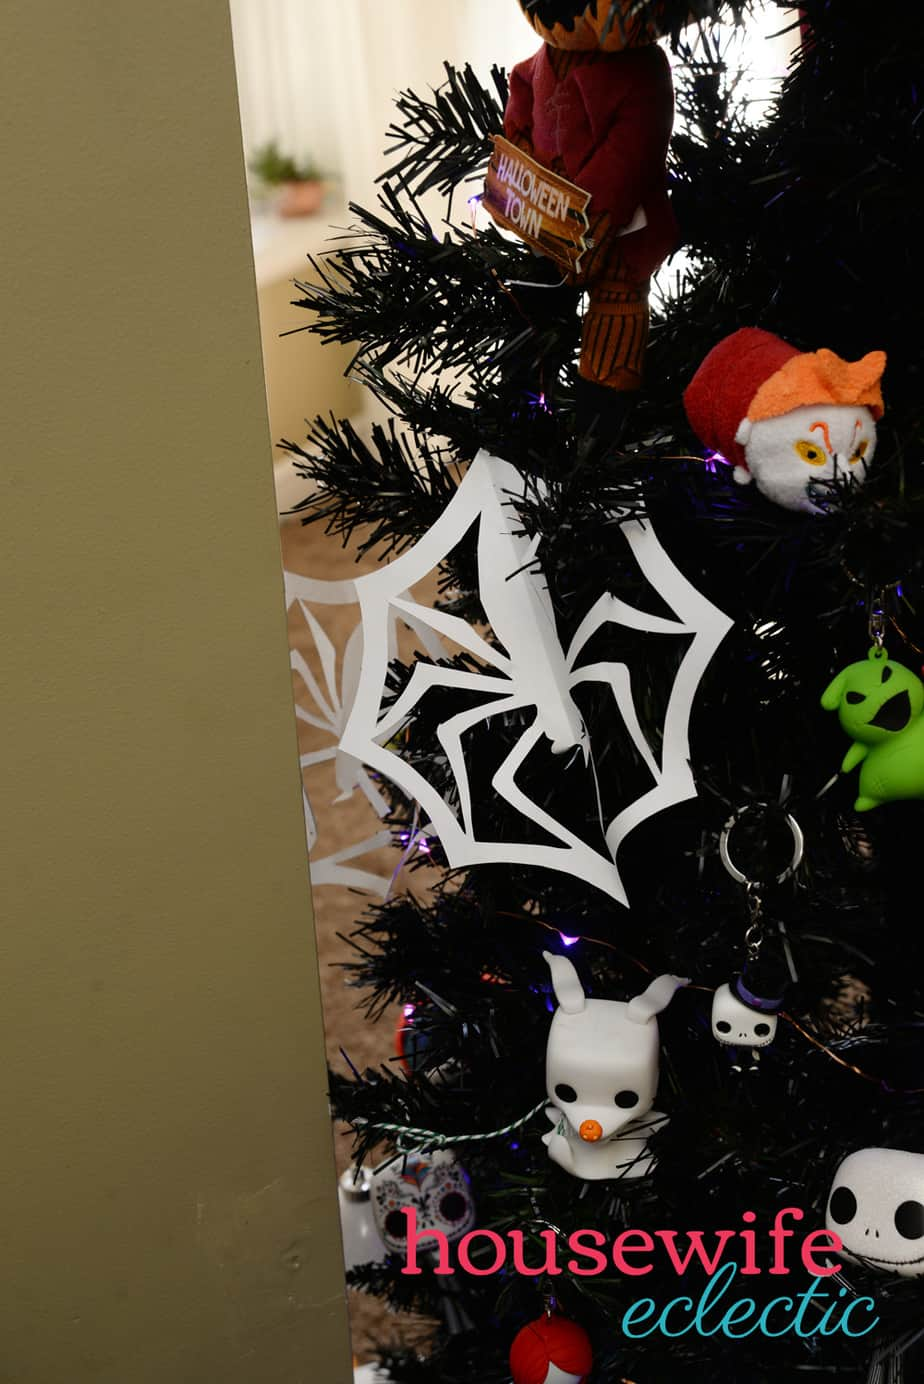 The Nightmare Before Christmas Tree - Housewife Eclectic